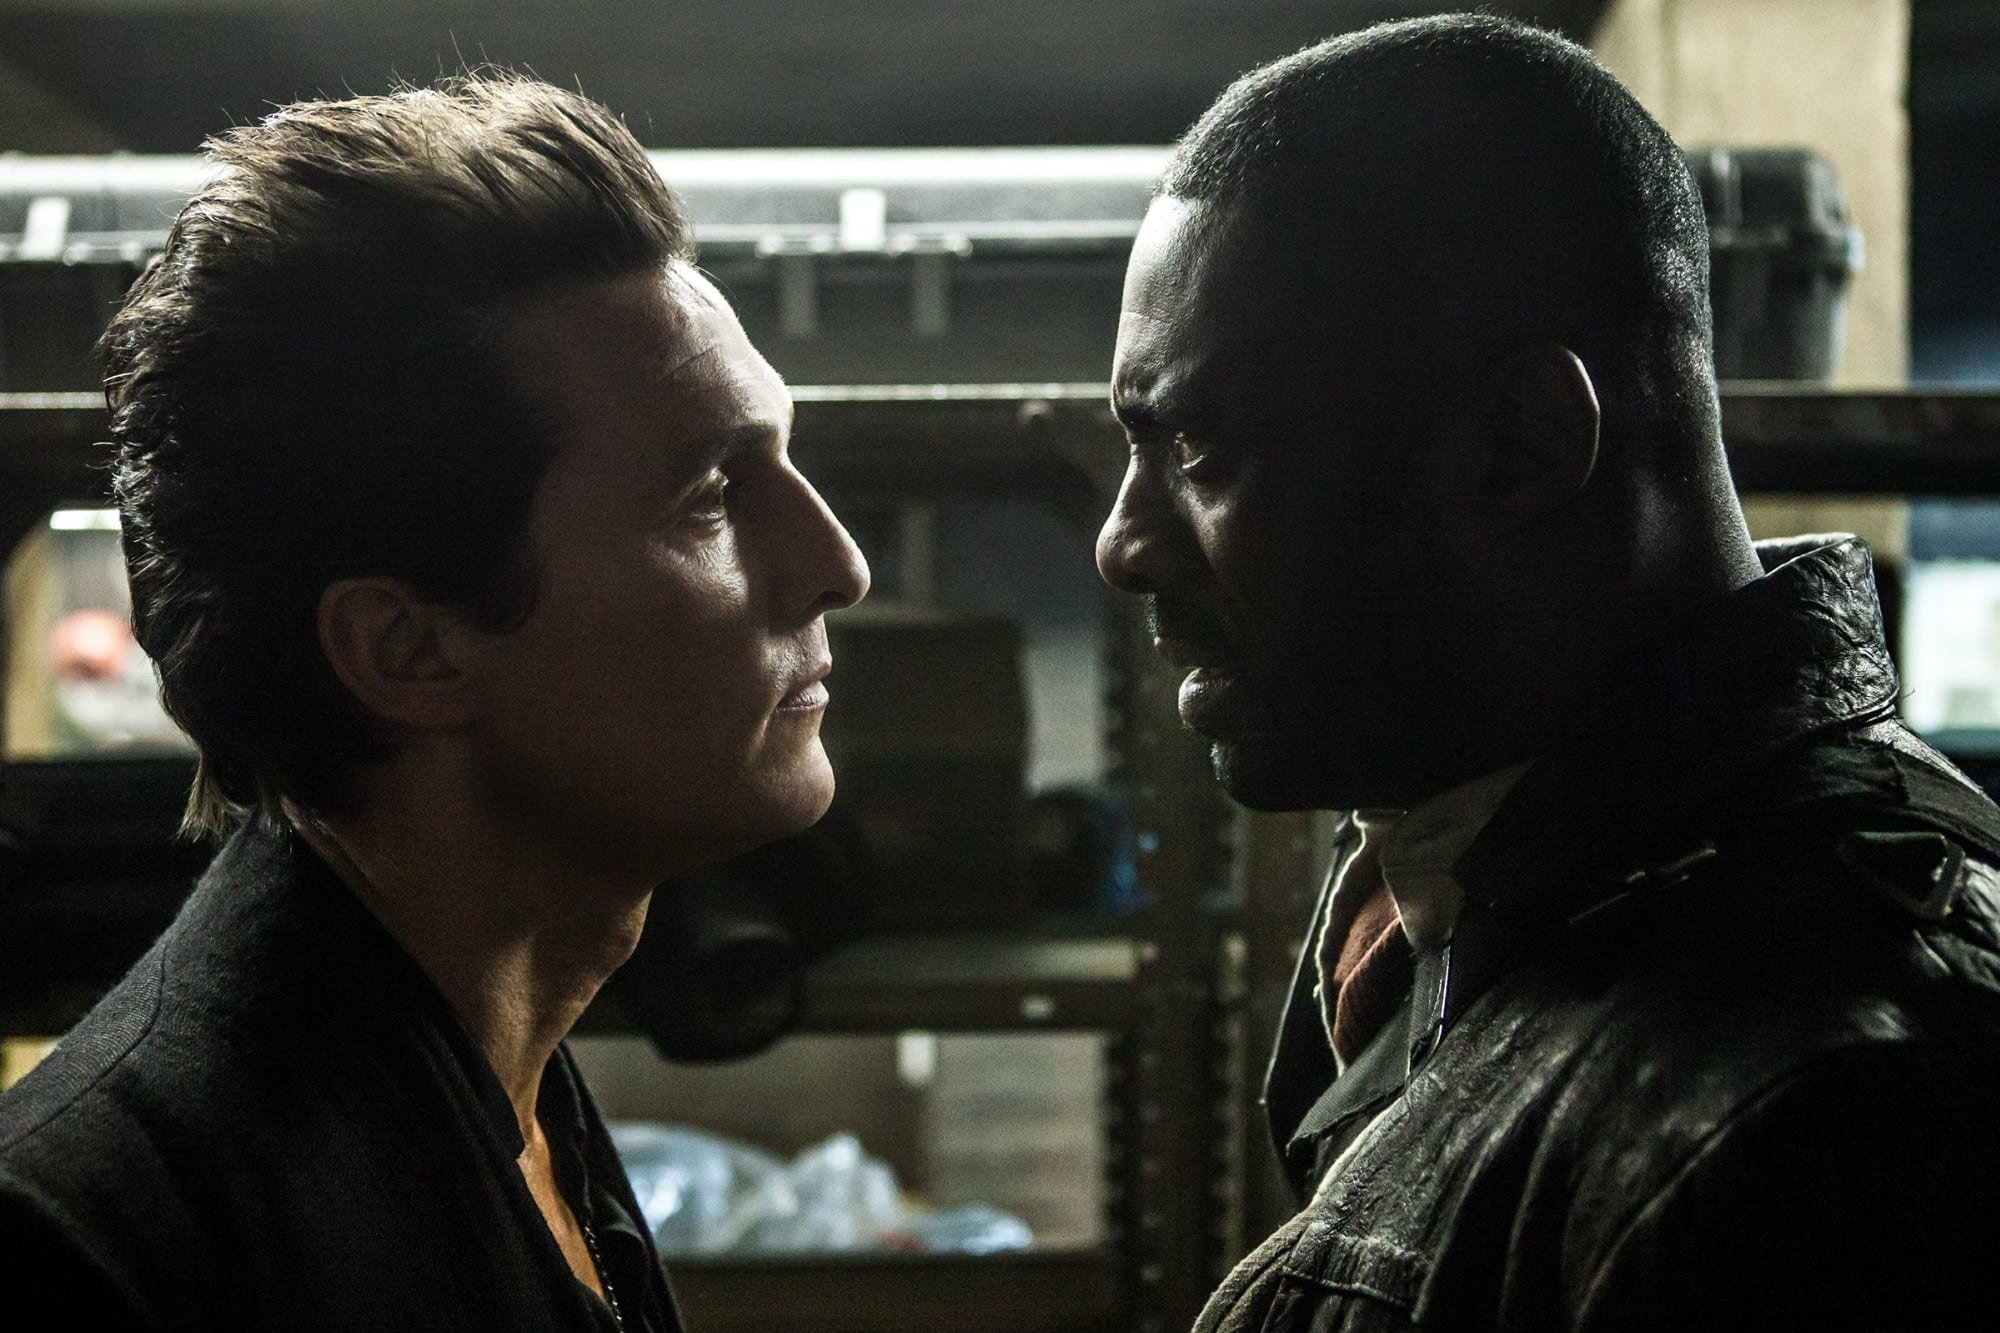 THE DARK TOWER Trailer Drops – And Confuses Some Book Fans